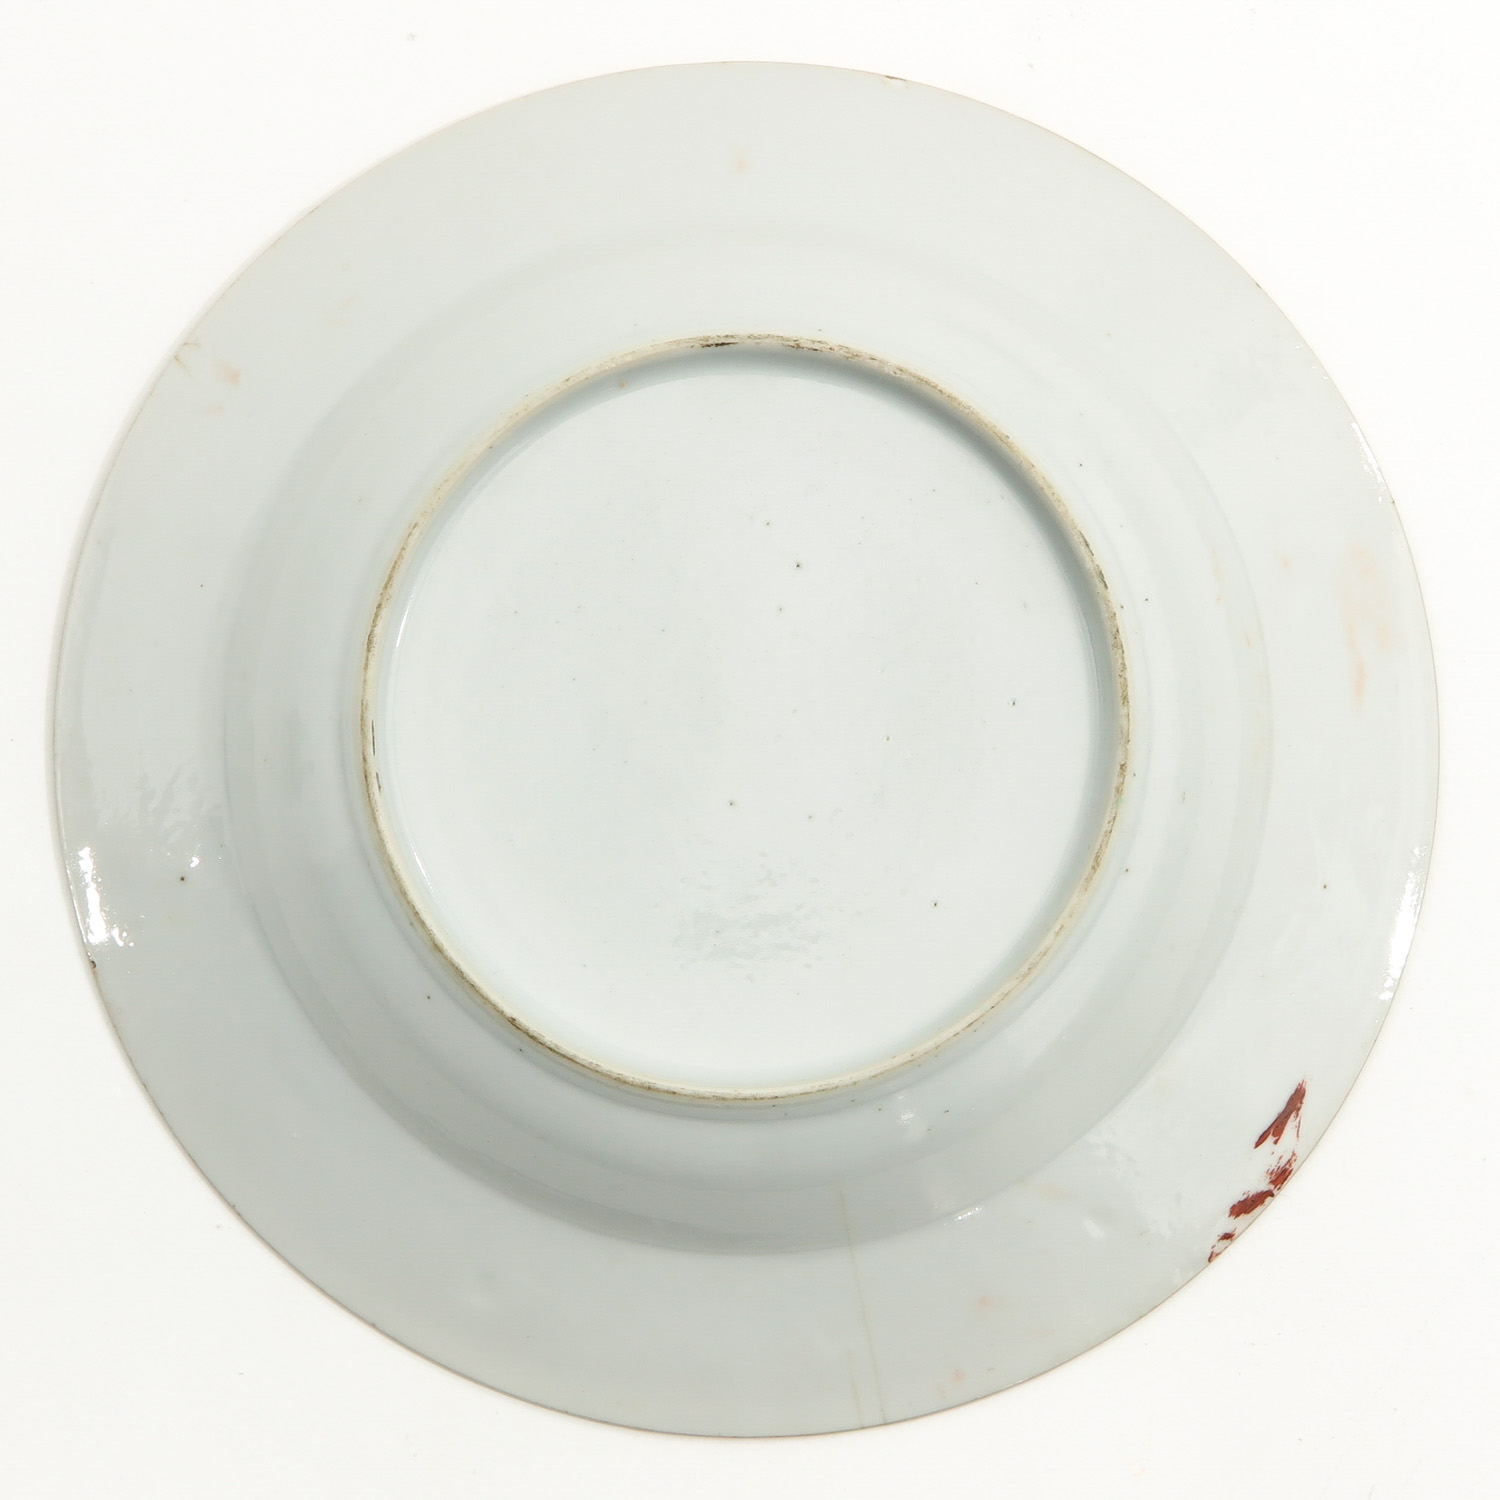 A Series of 3 Famille Rose Plates - Image 6 of 10